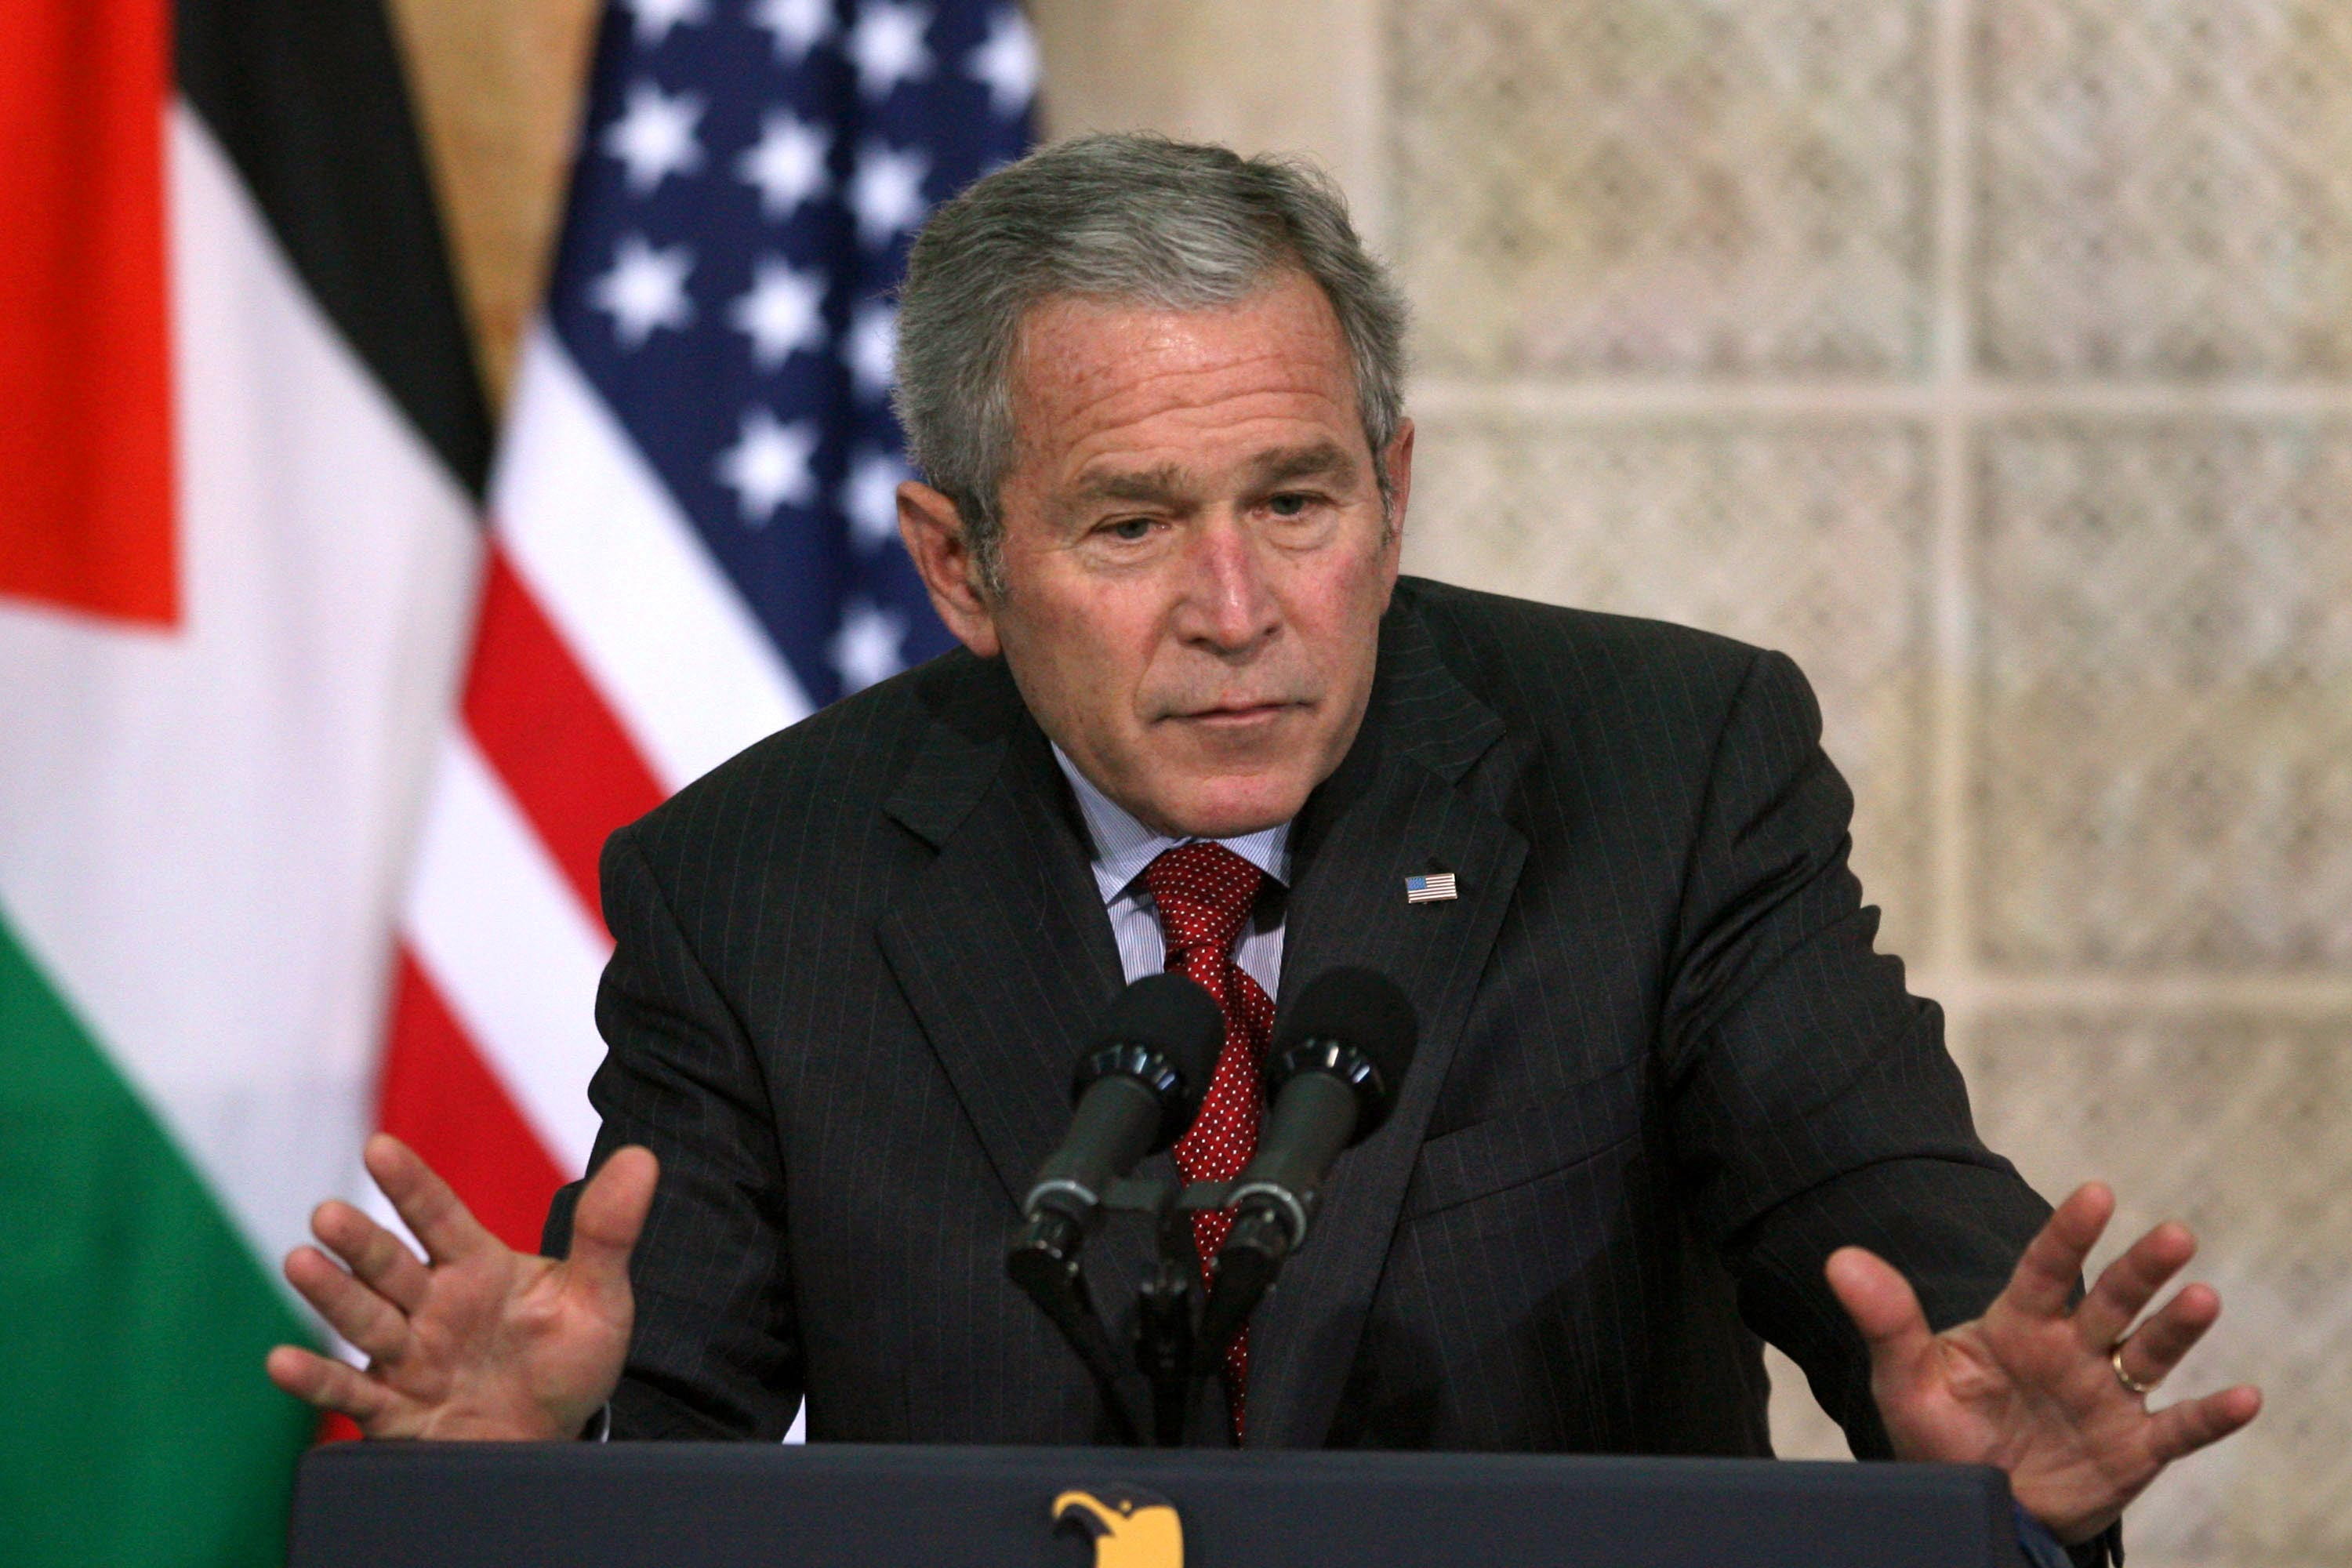 george w bush stands by the war and is embraced by liberal george w bush stands by the war and is embraced by liberal msm video